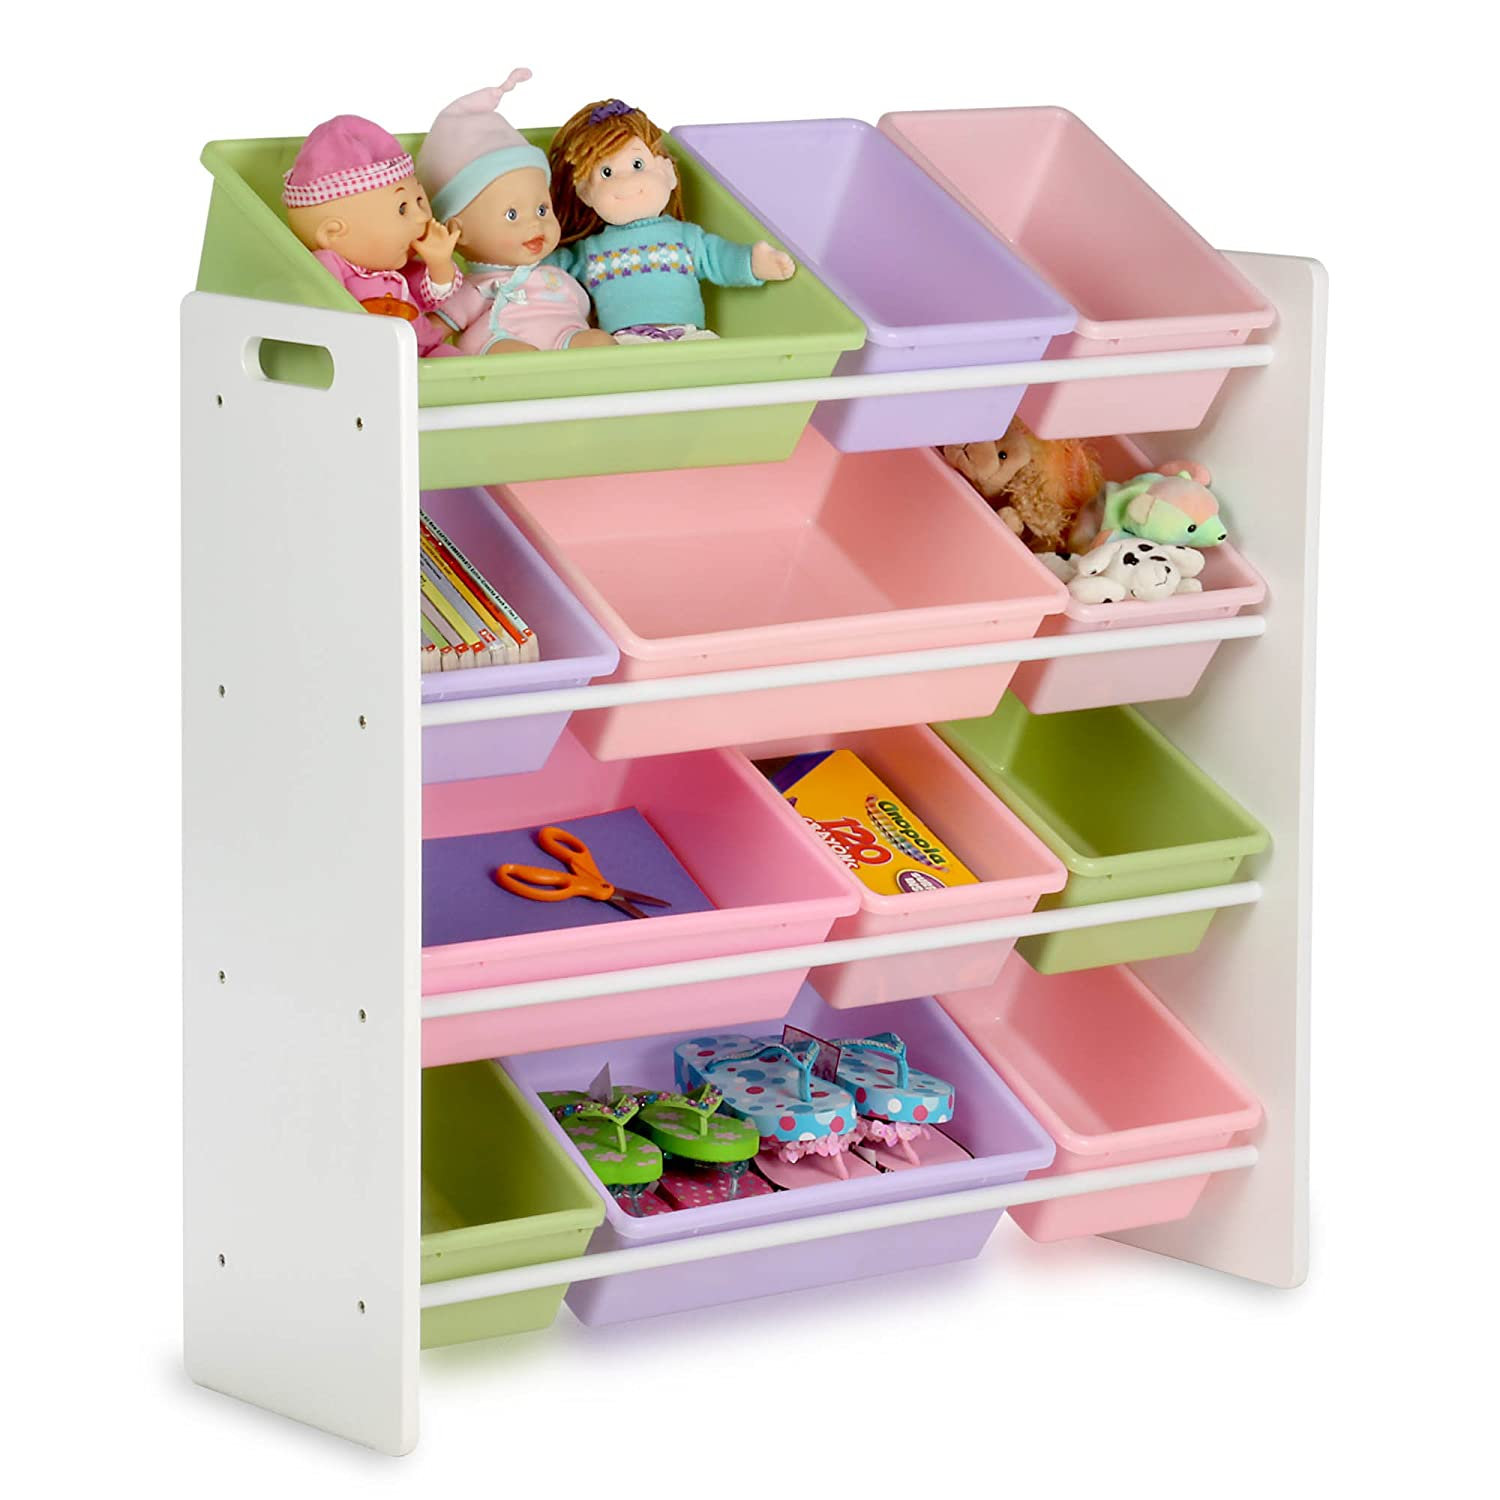 Amazon Honey Can Do SRT Kids Toy Organizer and Storage